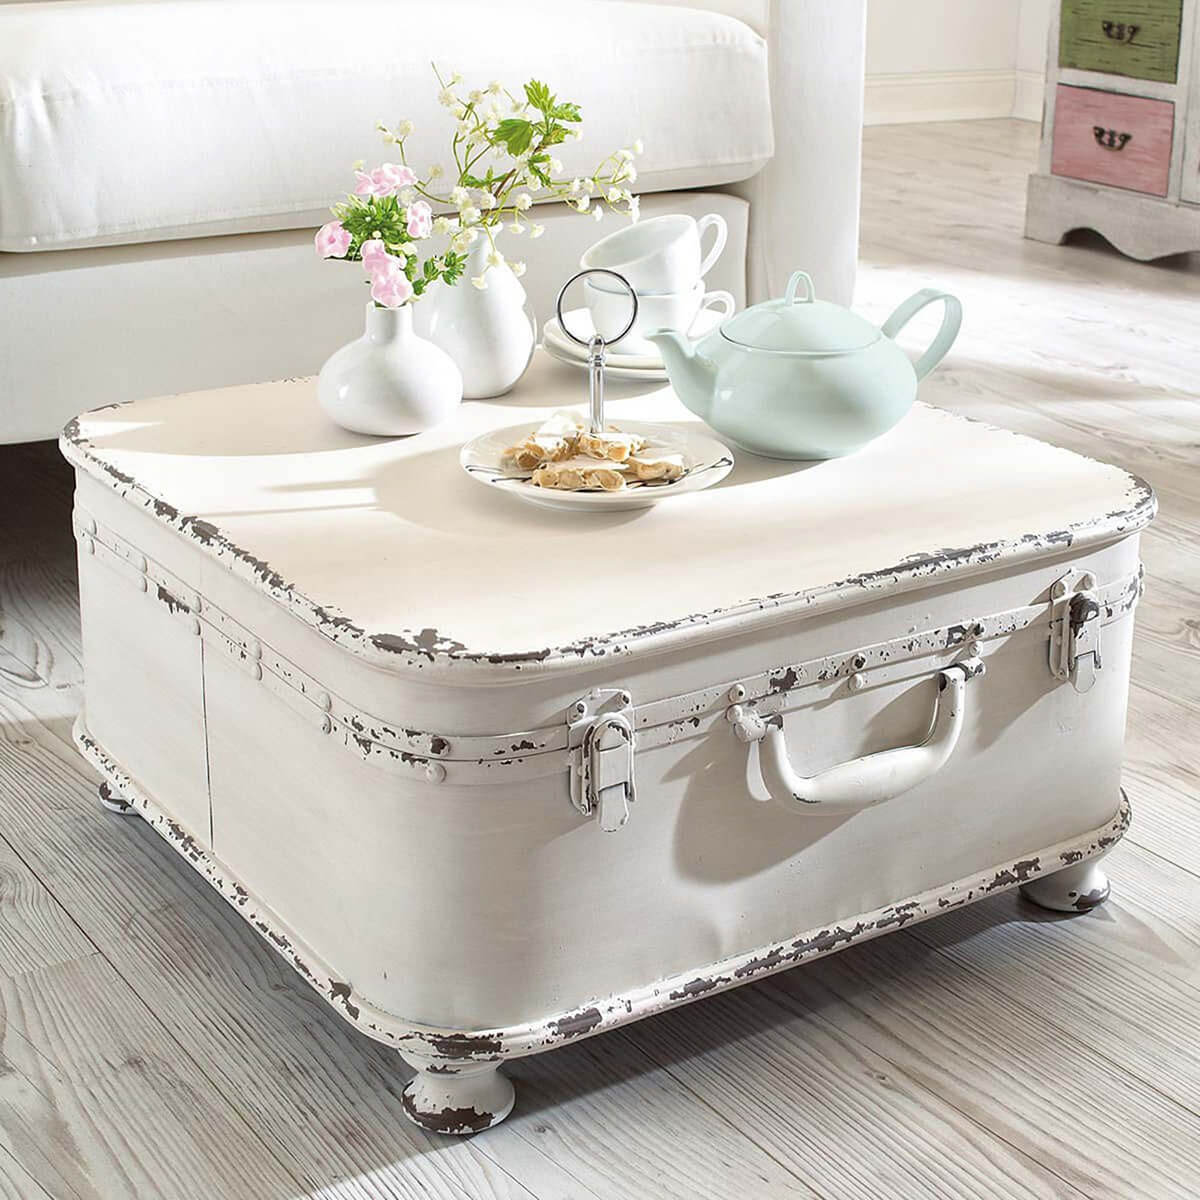 Table d'affaire shabby chic